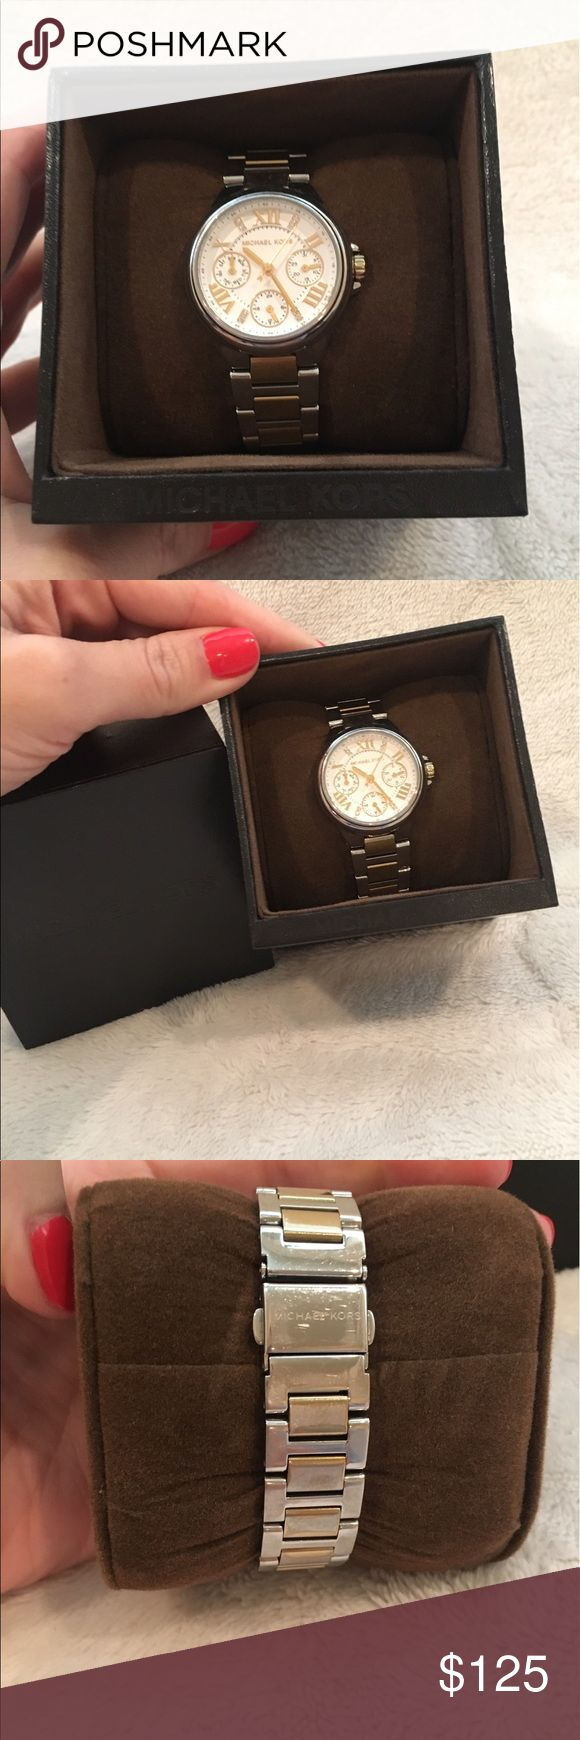 Michael Kors Gold and Silver Watch Michael Kors Gold and Silver watch. Comes with extra links, box, and original tags. Gently used. Some wear on color on the band as shown in picture. Michael Kors Accessories Watches